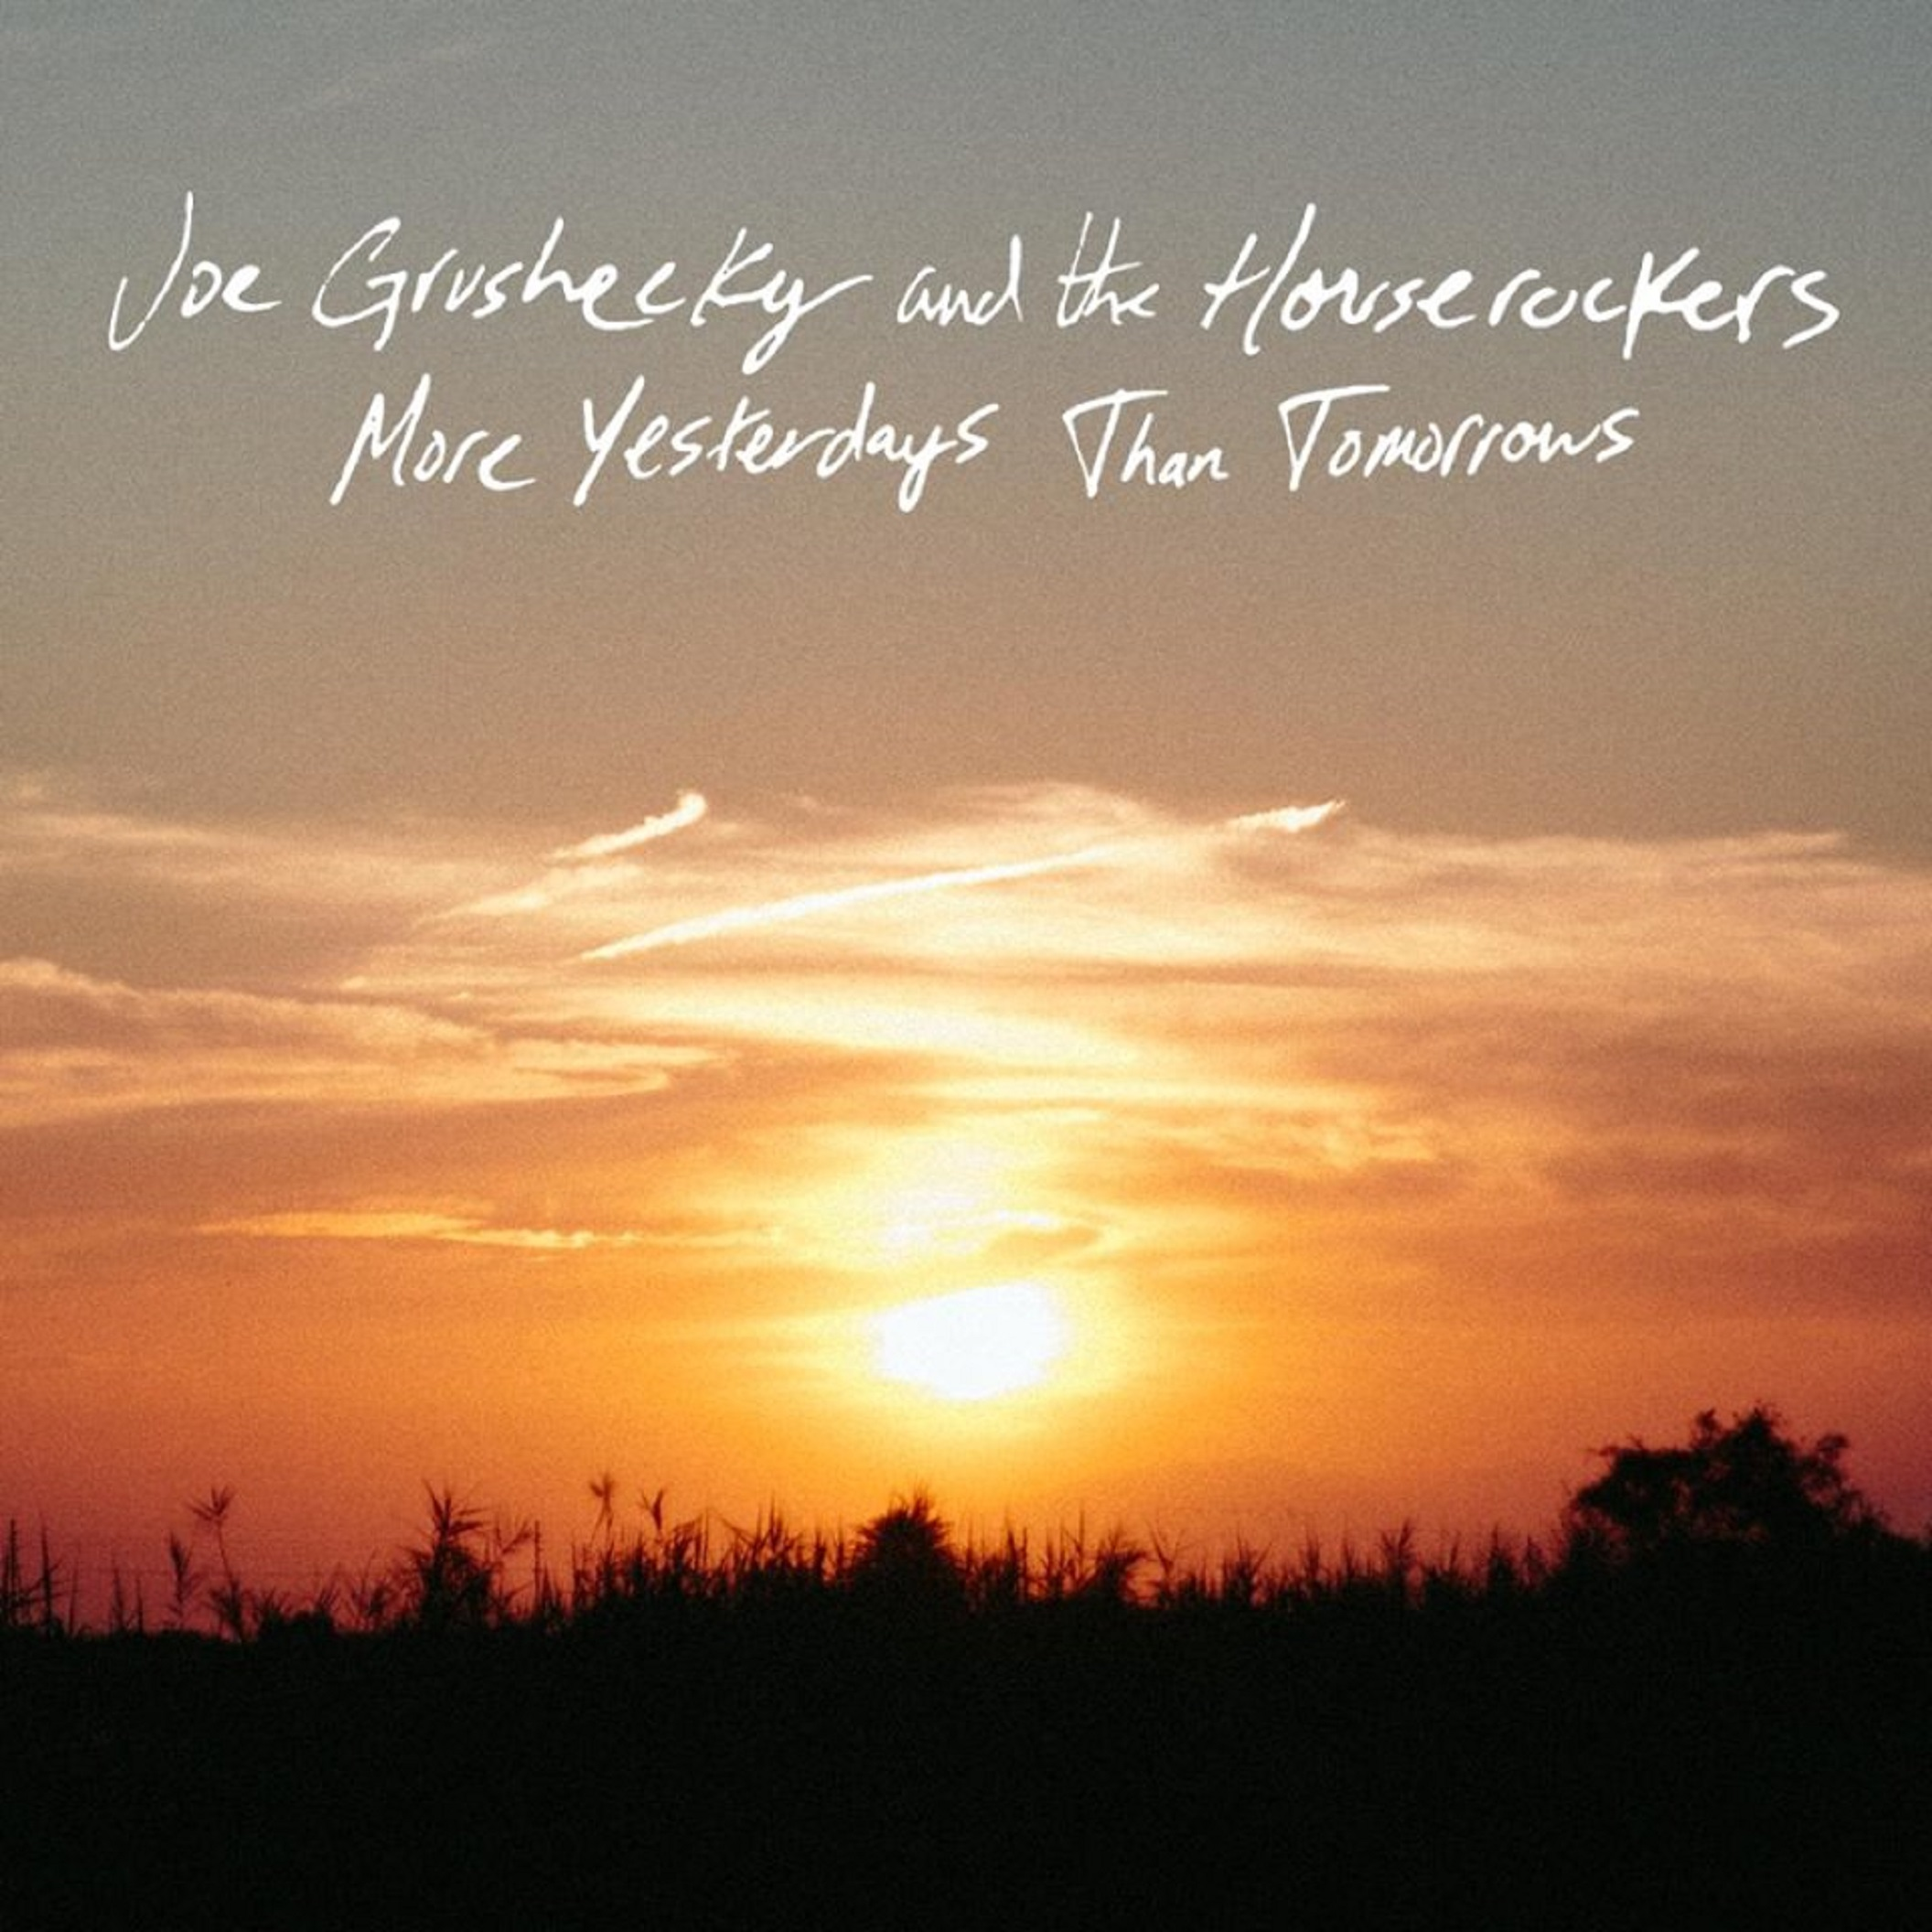 Joe Grushecky & the Houserockers Release New Album